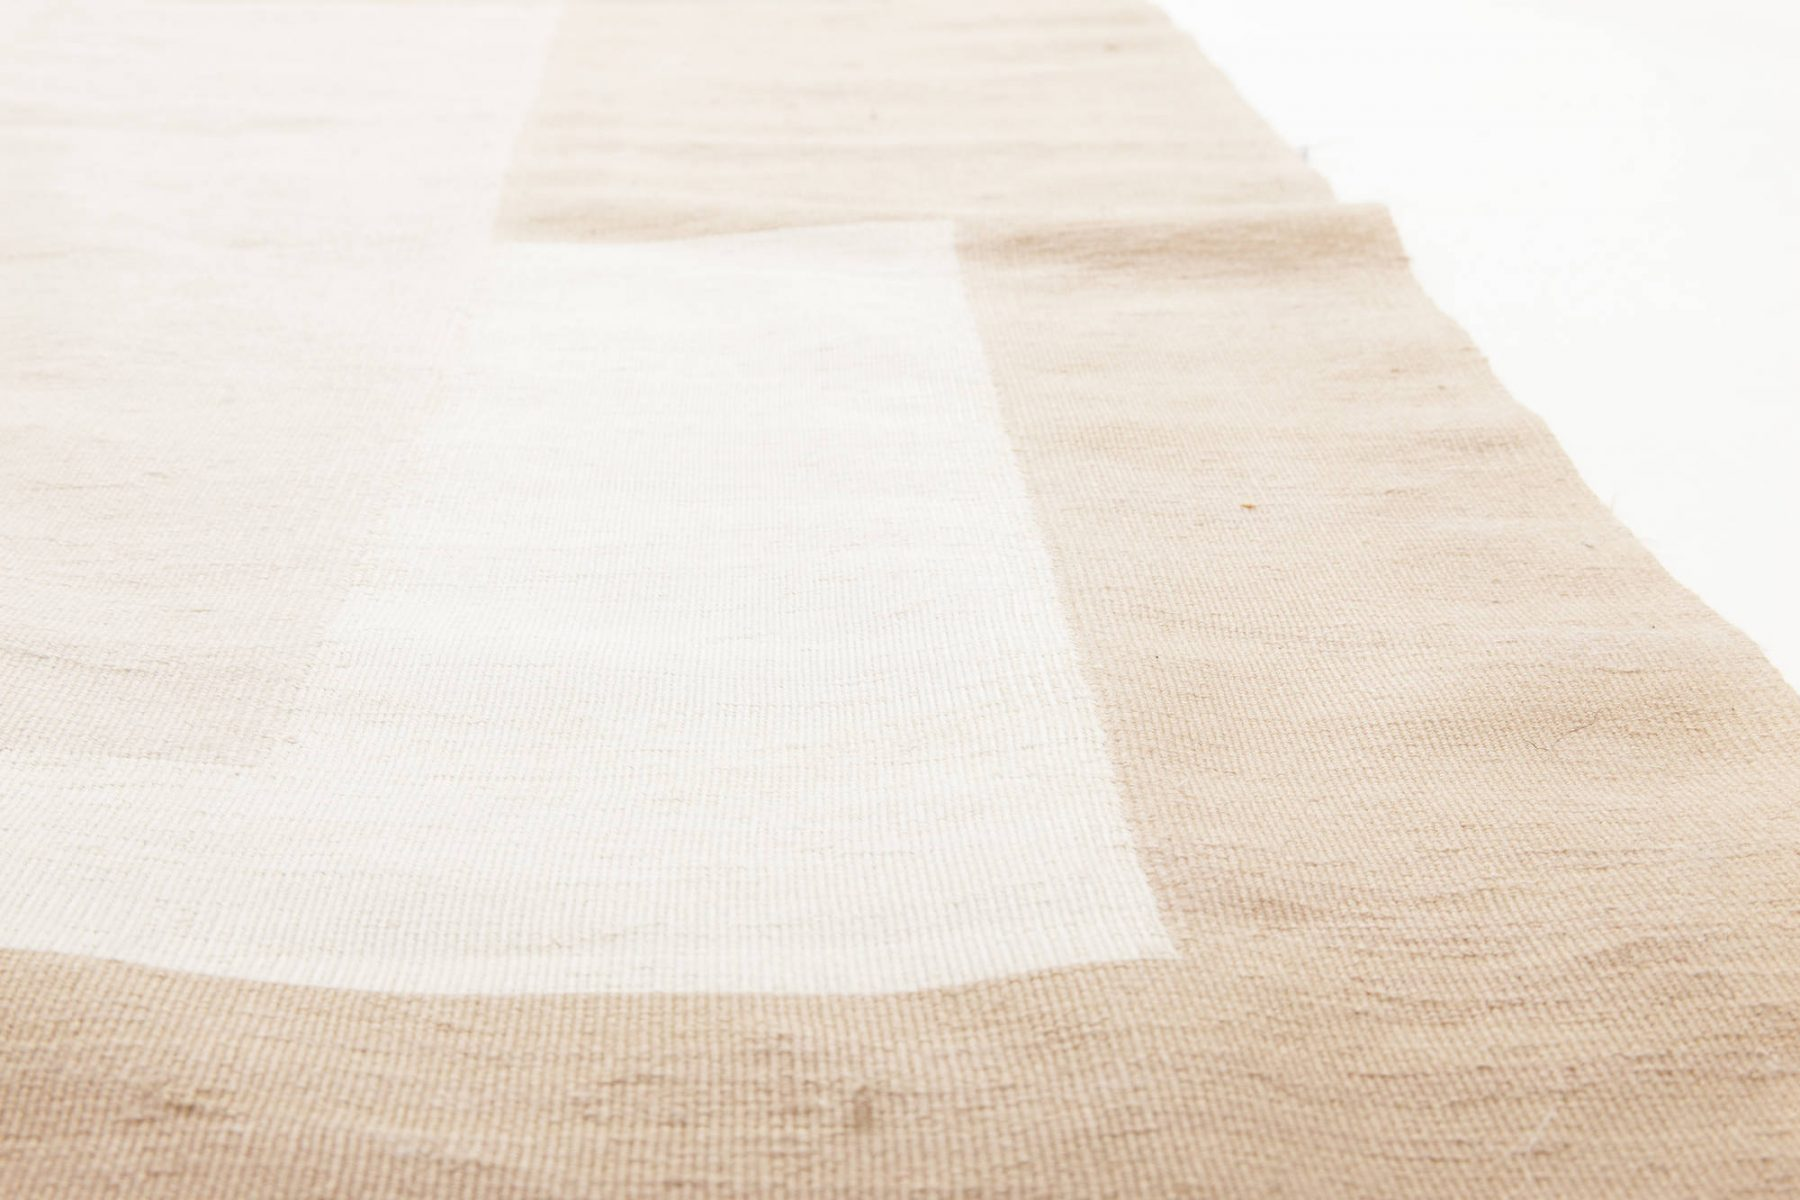 Contemporary Flat-Weave Wool Beige and White Geometric Rug N11496